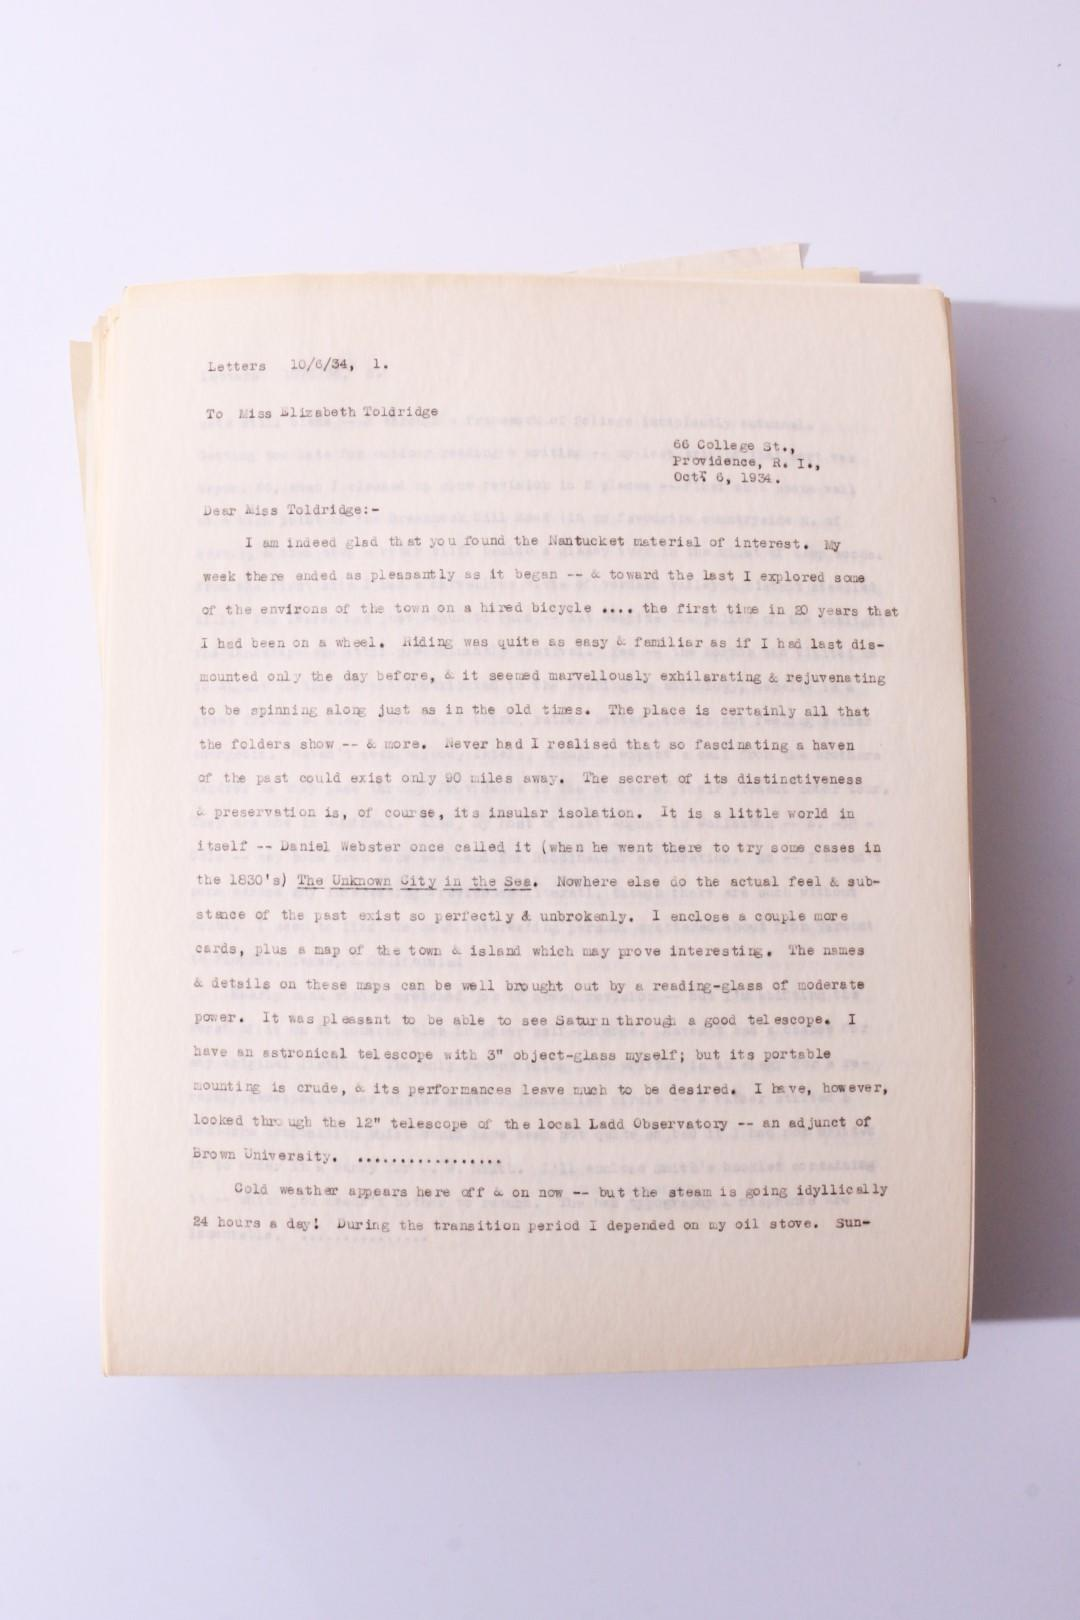 H.P. Lovecraft - Typescript for the Fifth Volume of Lovecraft's Letters as Published by Arkham House - Arkham House, c1976, Manuscript.